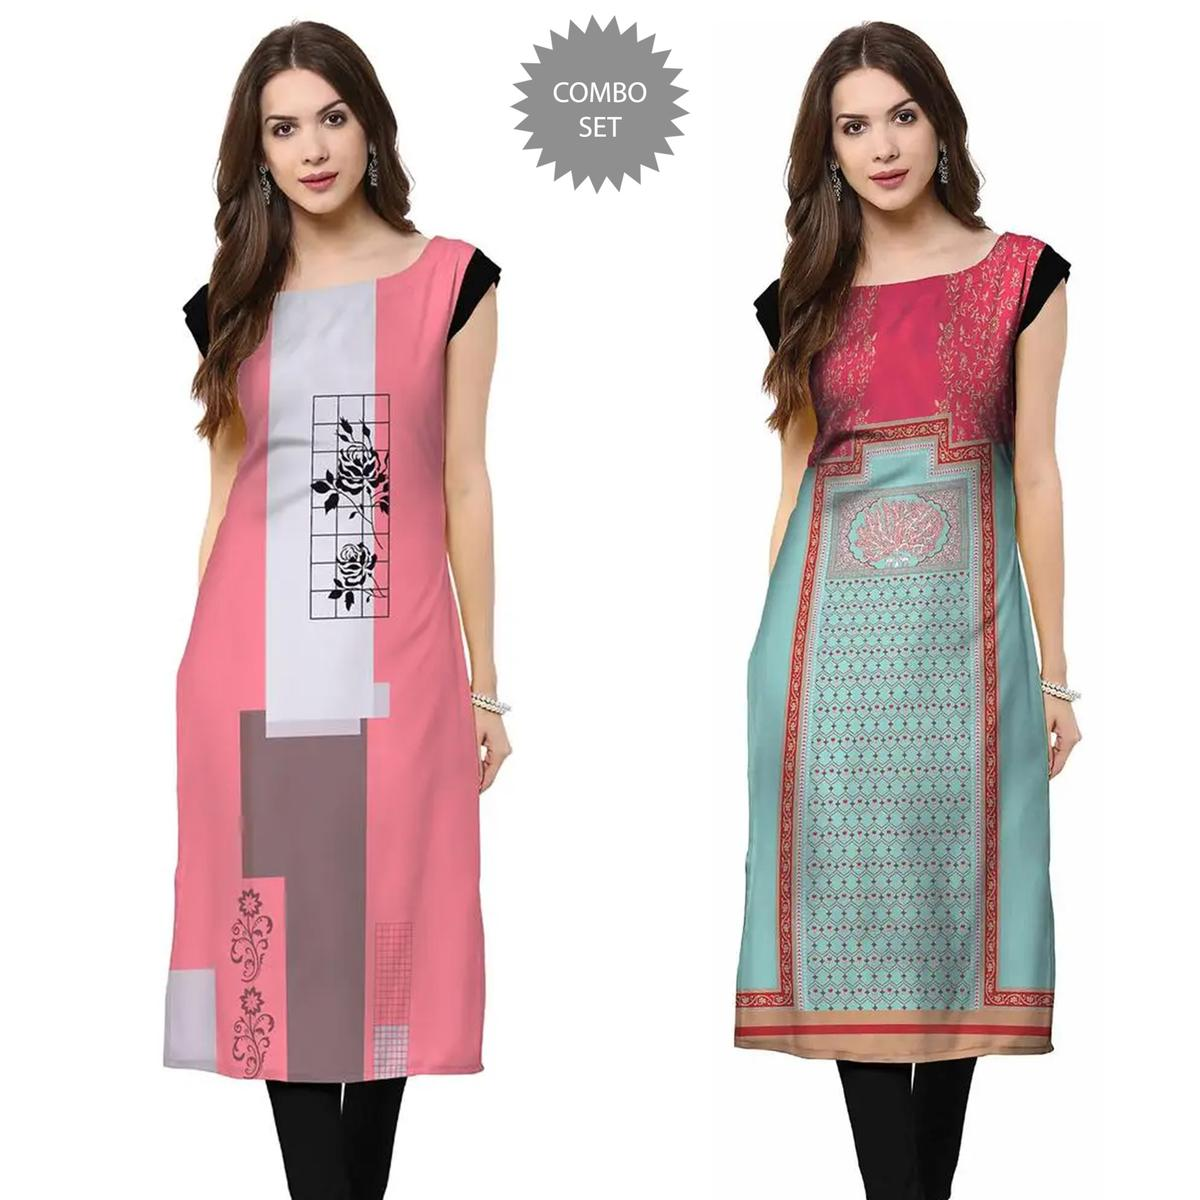 Majesty Casual Wear Printed Crepe Kurti - Pack of 2